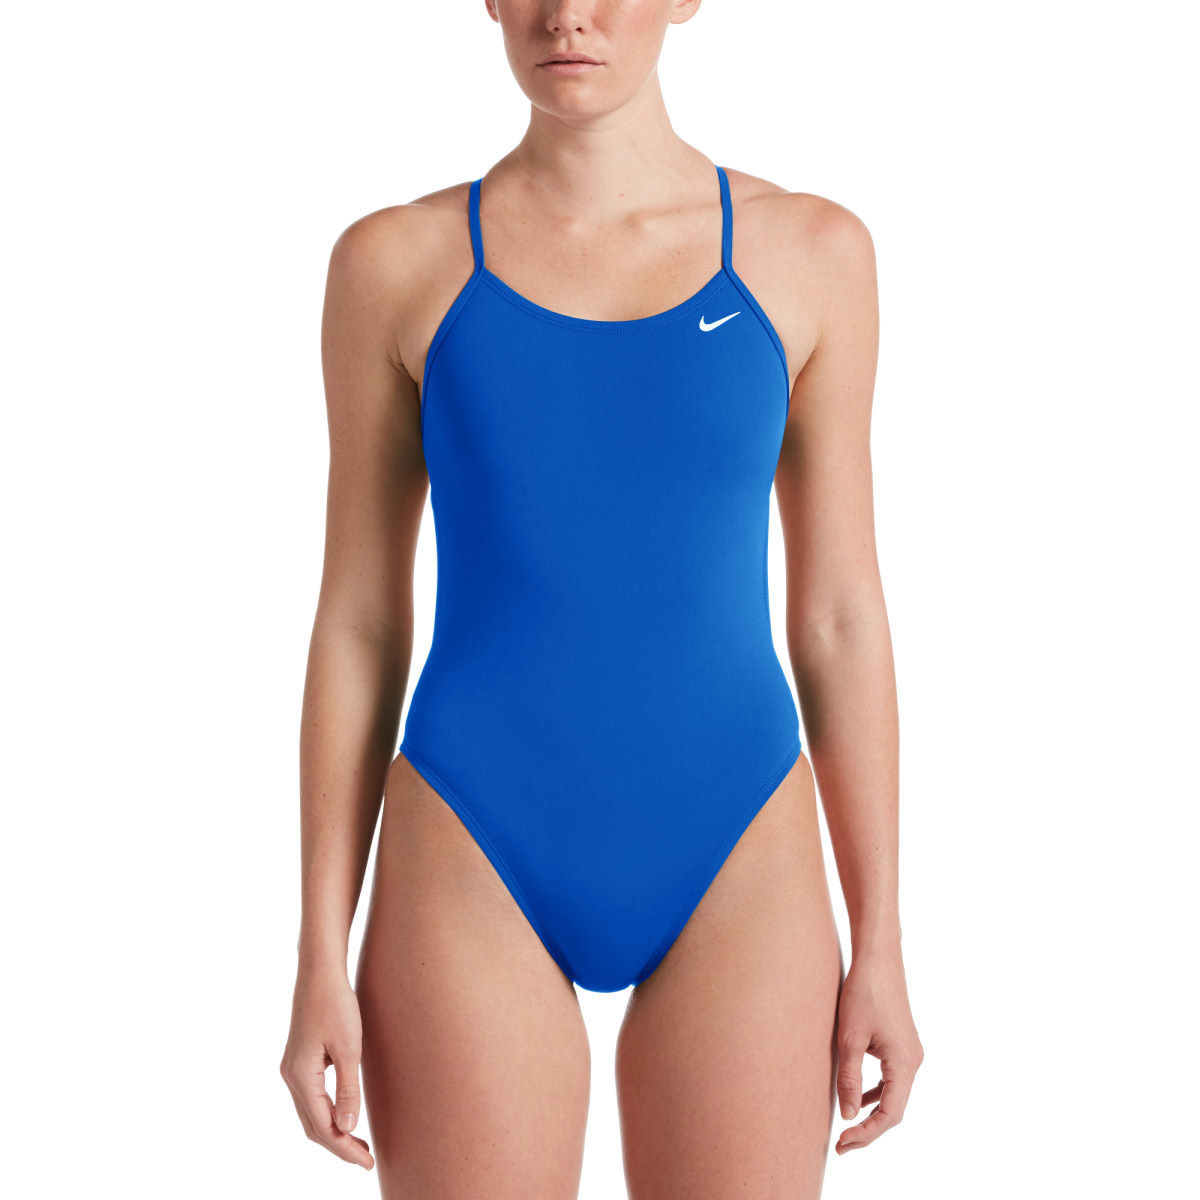 Nike Womens Hydrastrong Swimsuit (cutout) - 32 494 Game Royal